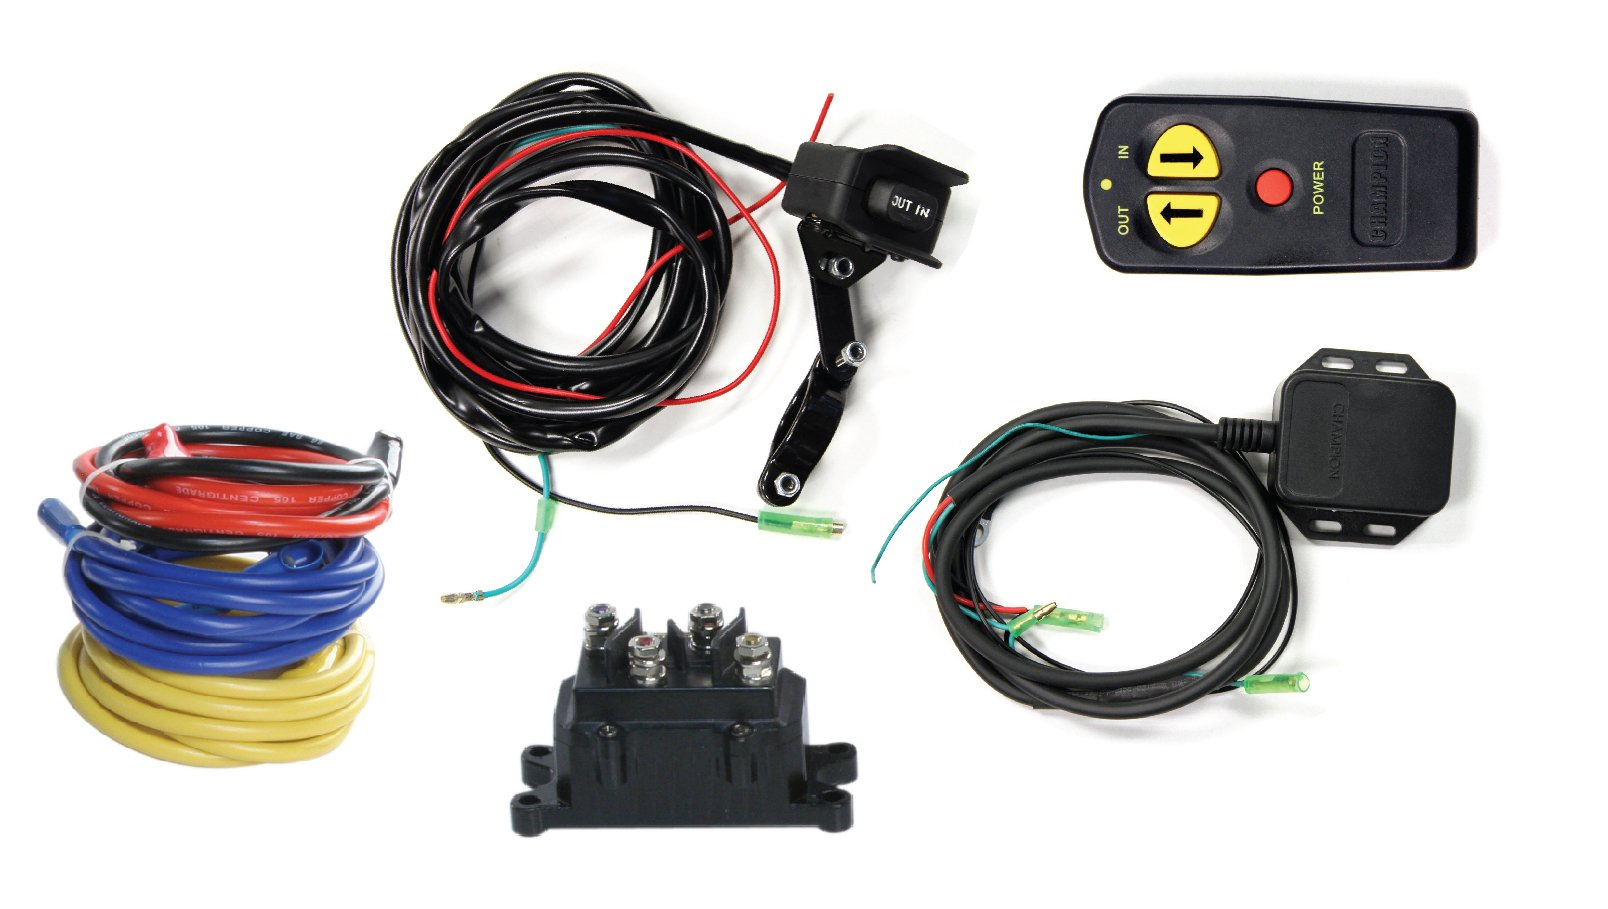 Champion Wireless Winch Remote Control Kit for 5000-lb. or Less ATV/UTV Winches by Champion Power Equipment